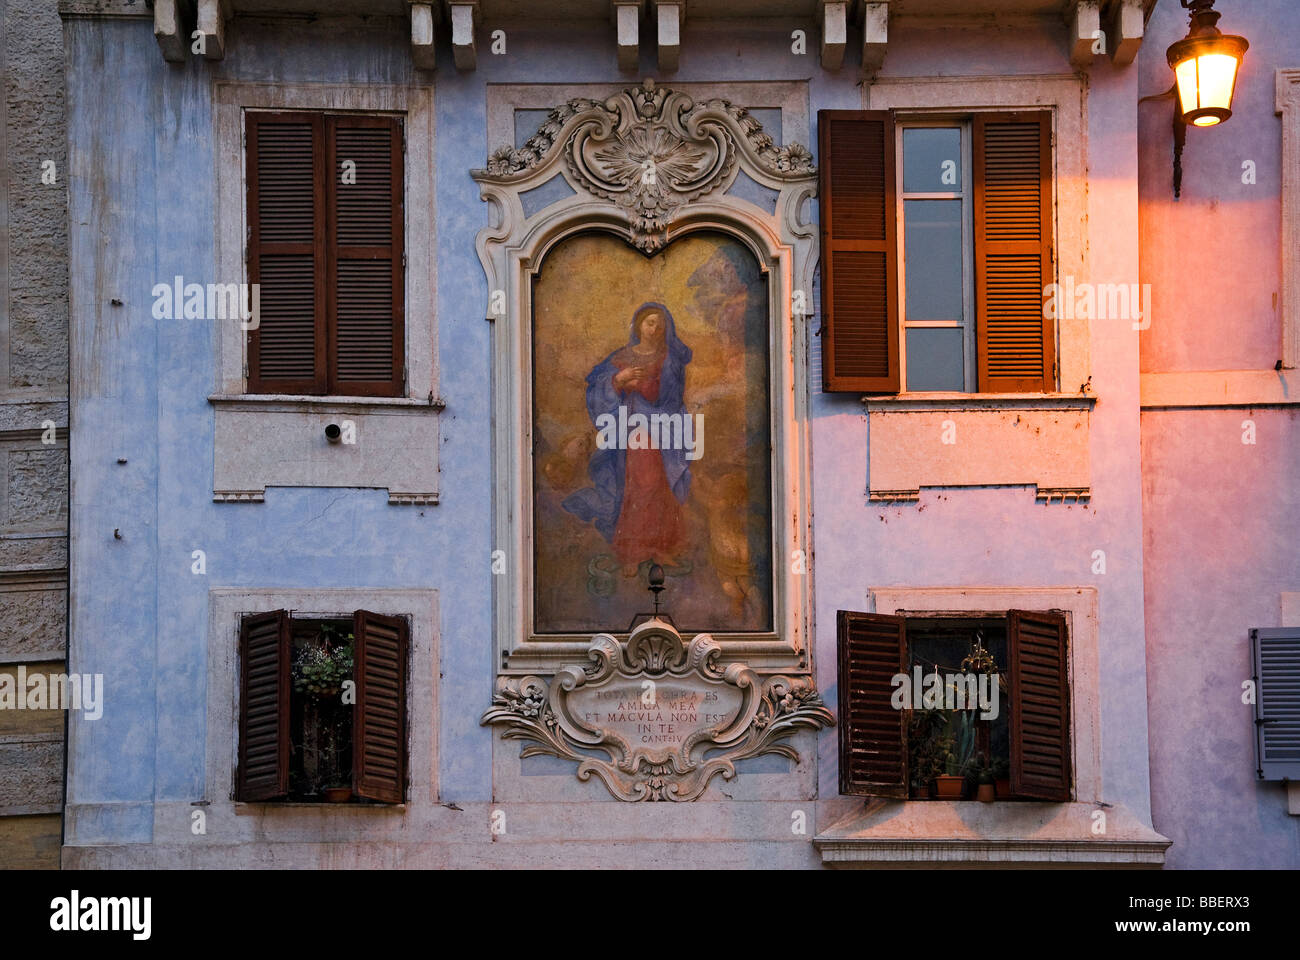 religious image on the facade of a palace in Rome in Italy - Stock Image